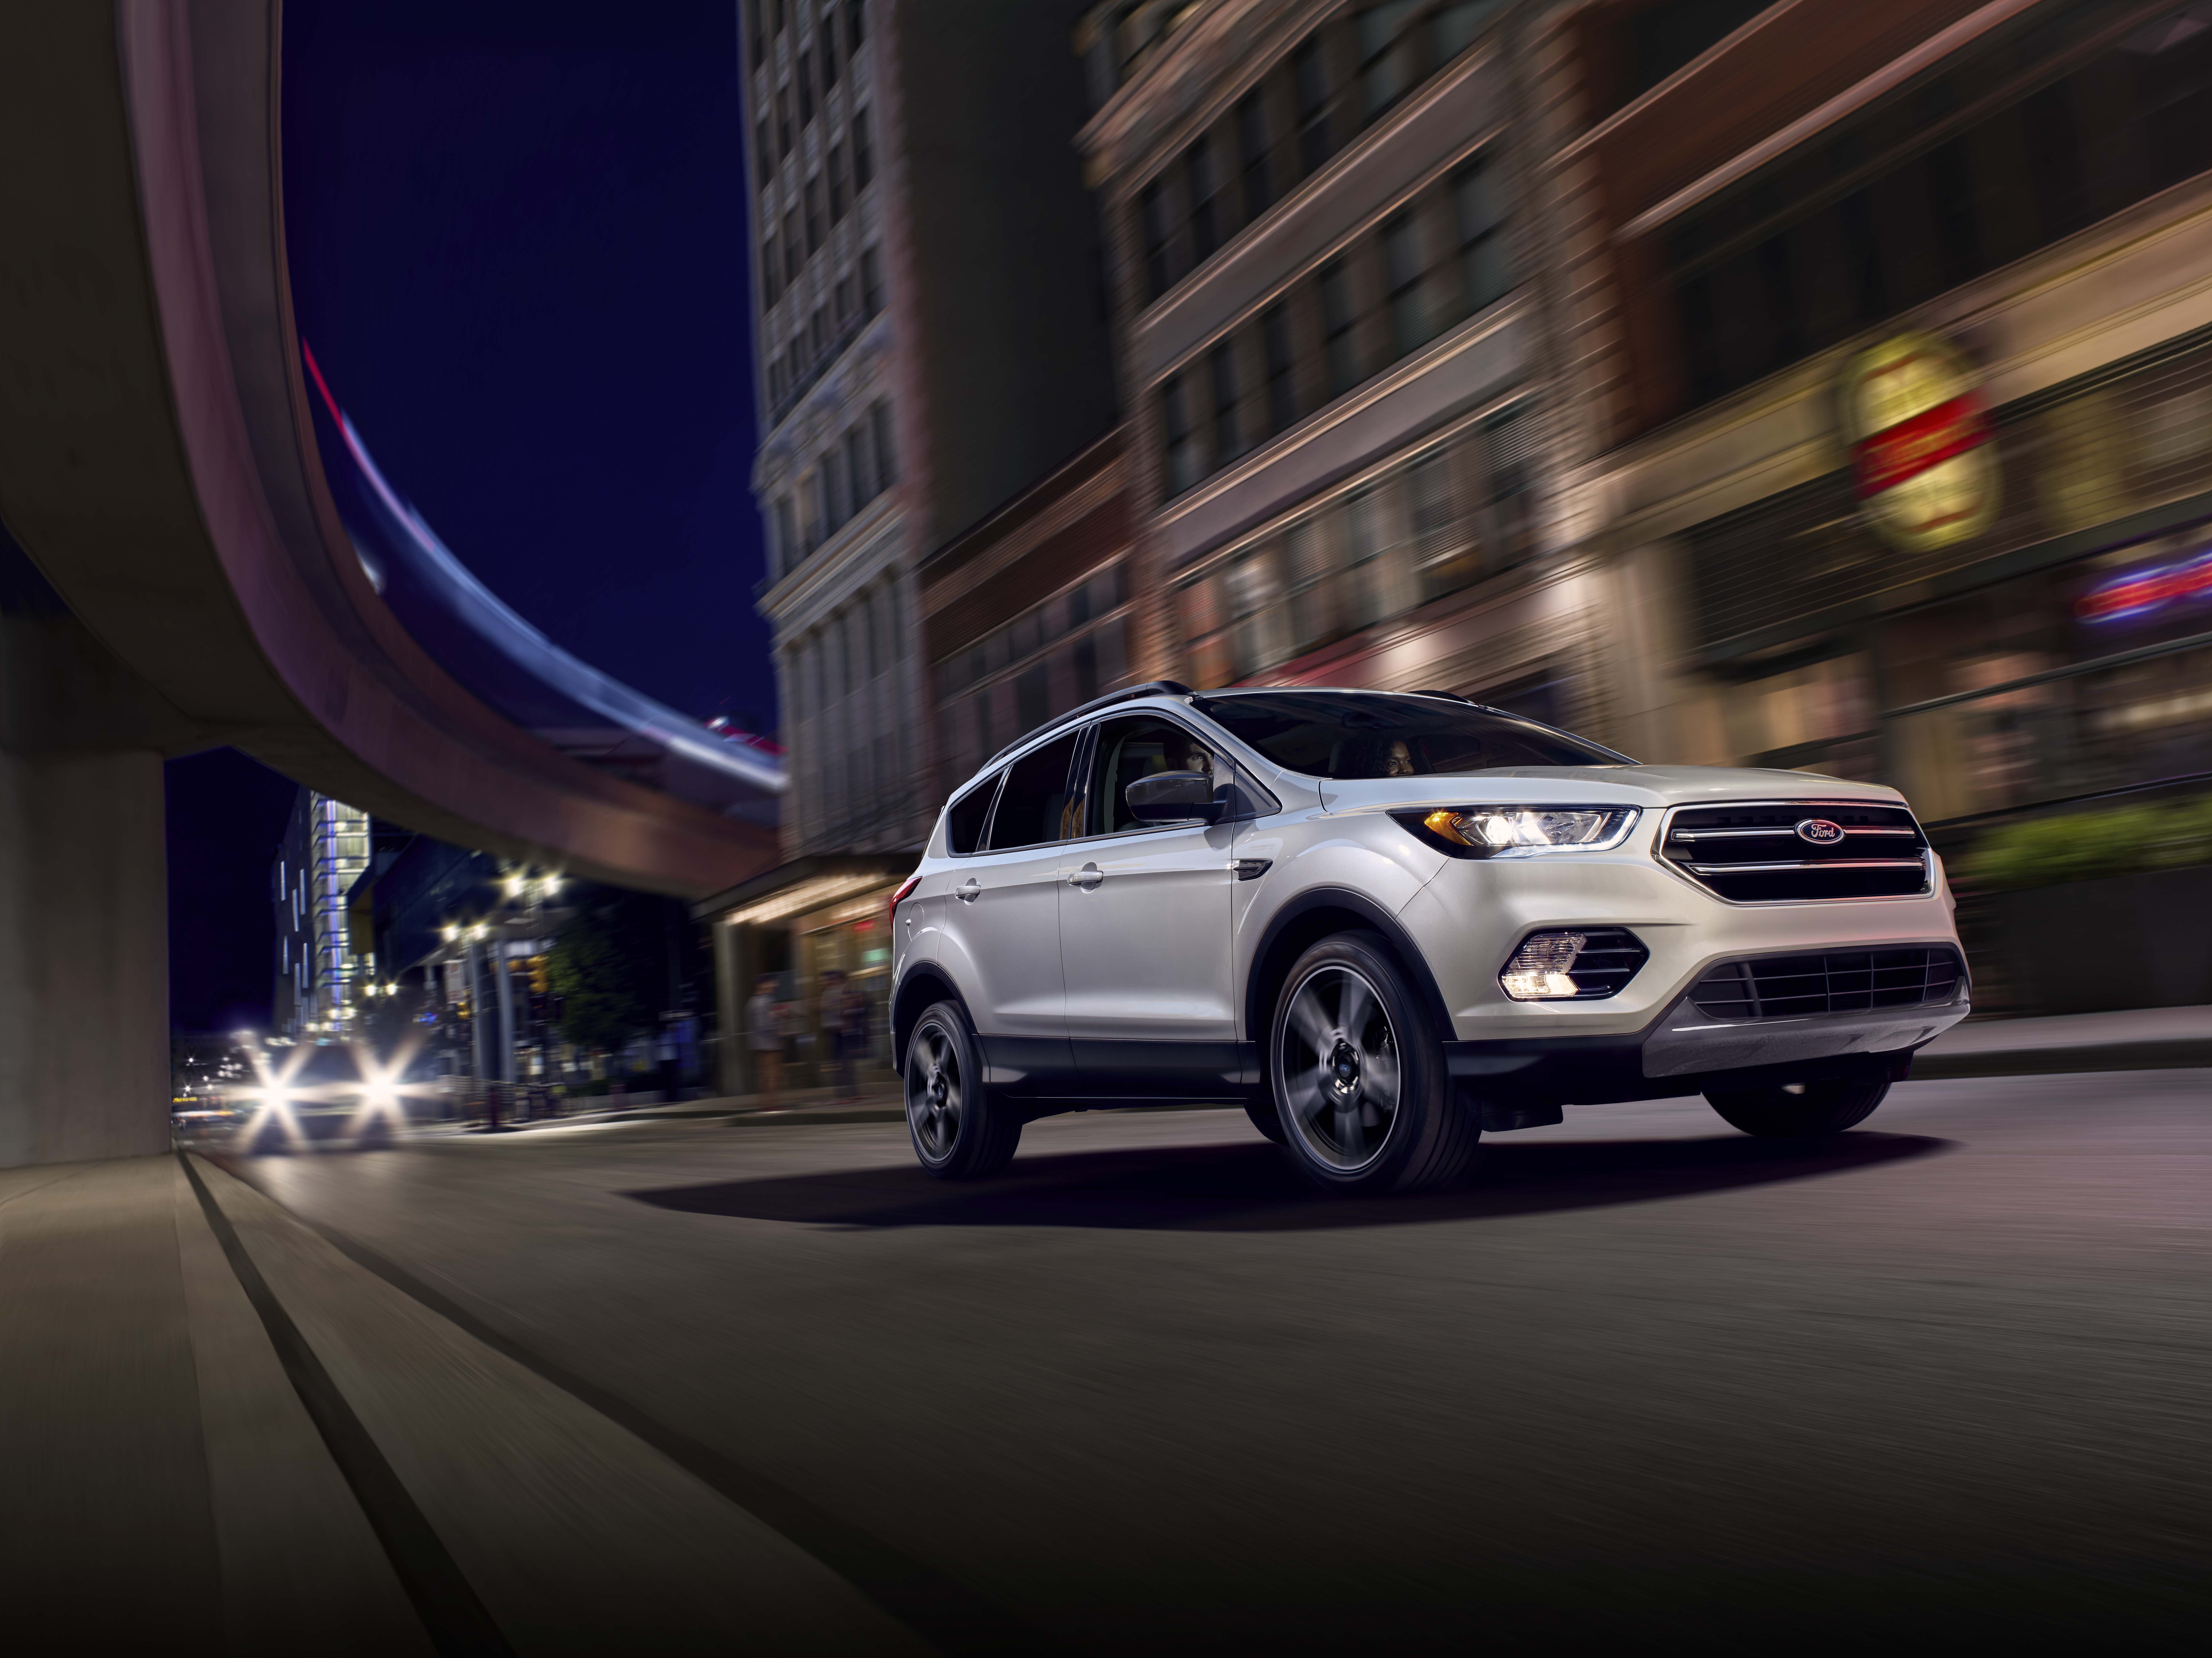 Ford Escapes available in Louisville, KY at Oxmoor Ford Lincoln